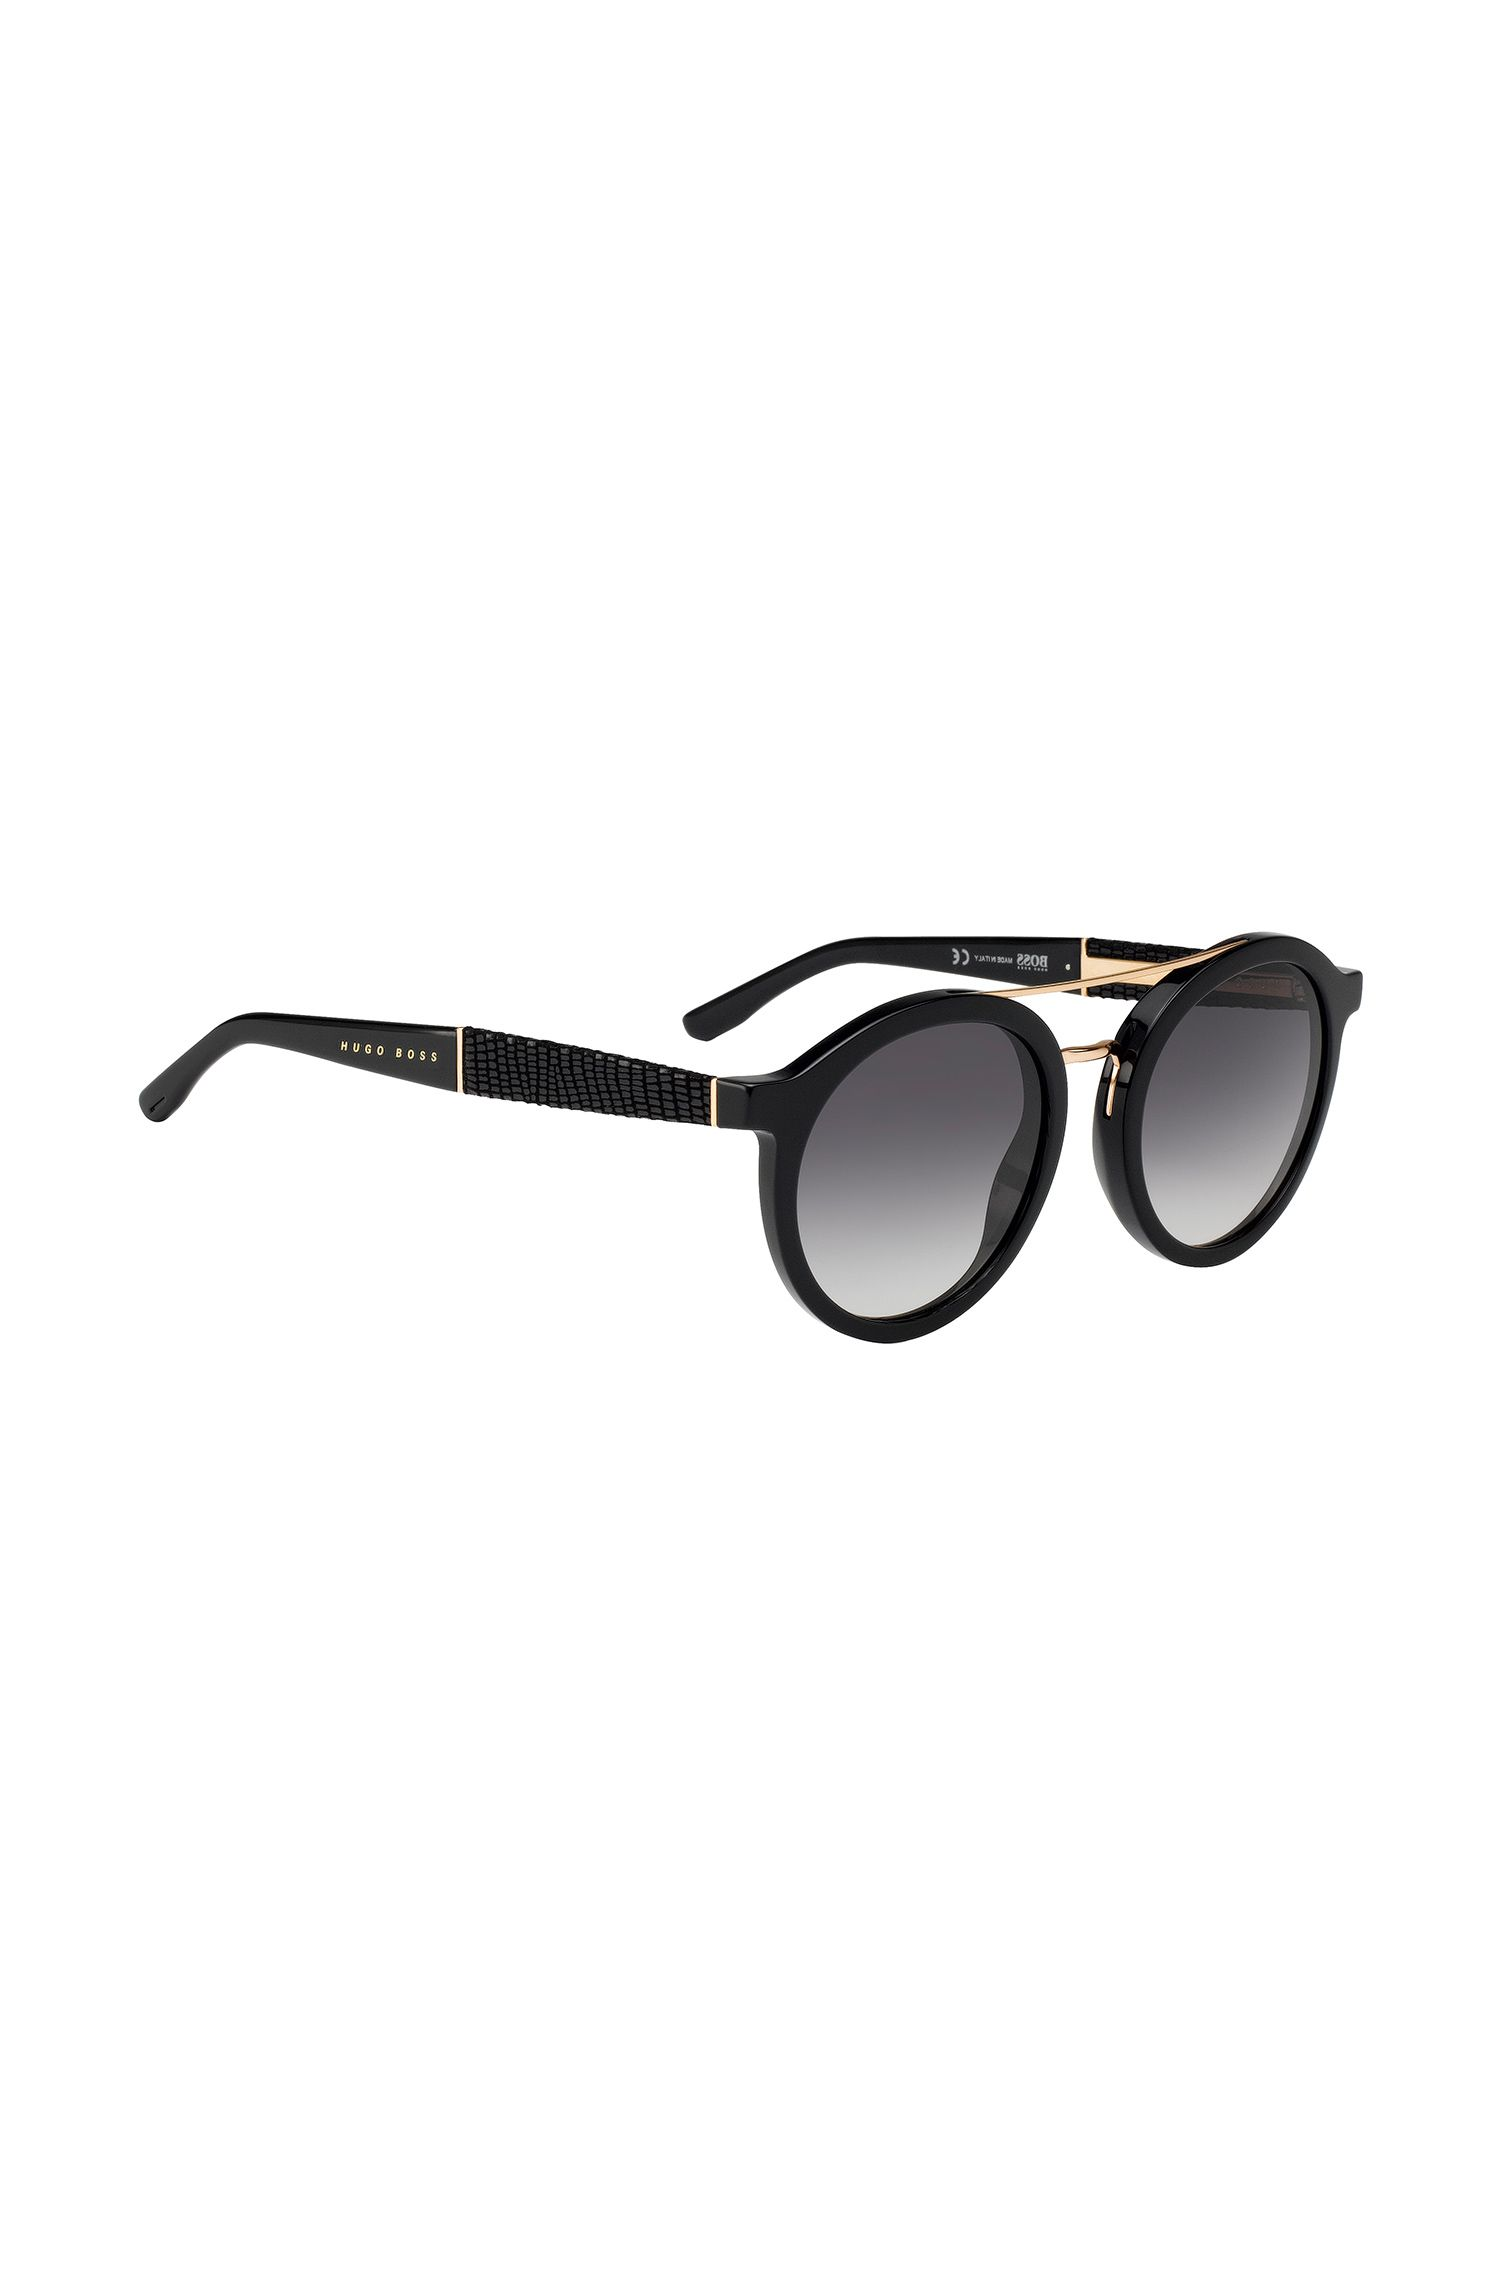 'BOSS 0853S' | Round Gradient Lens Acetate Leather Sunglasses